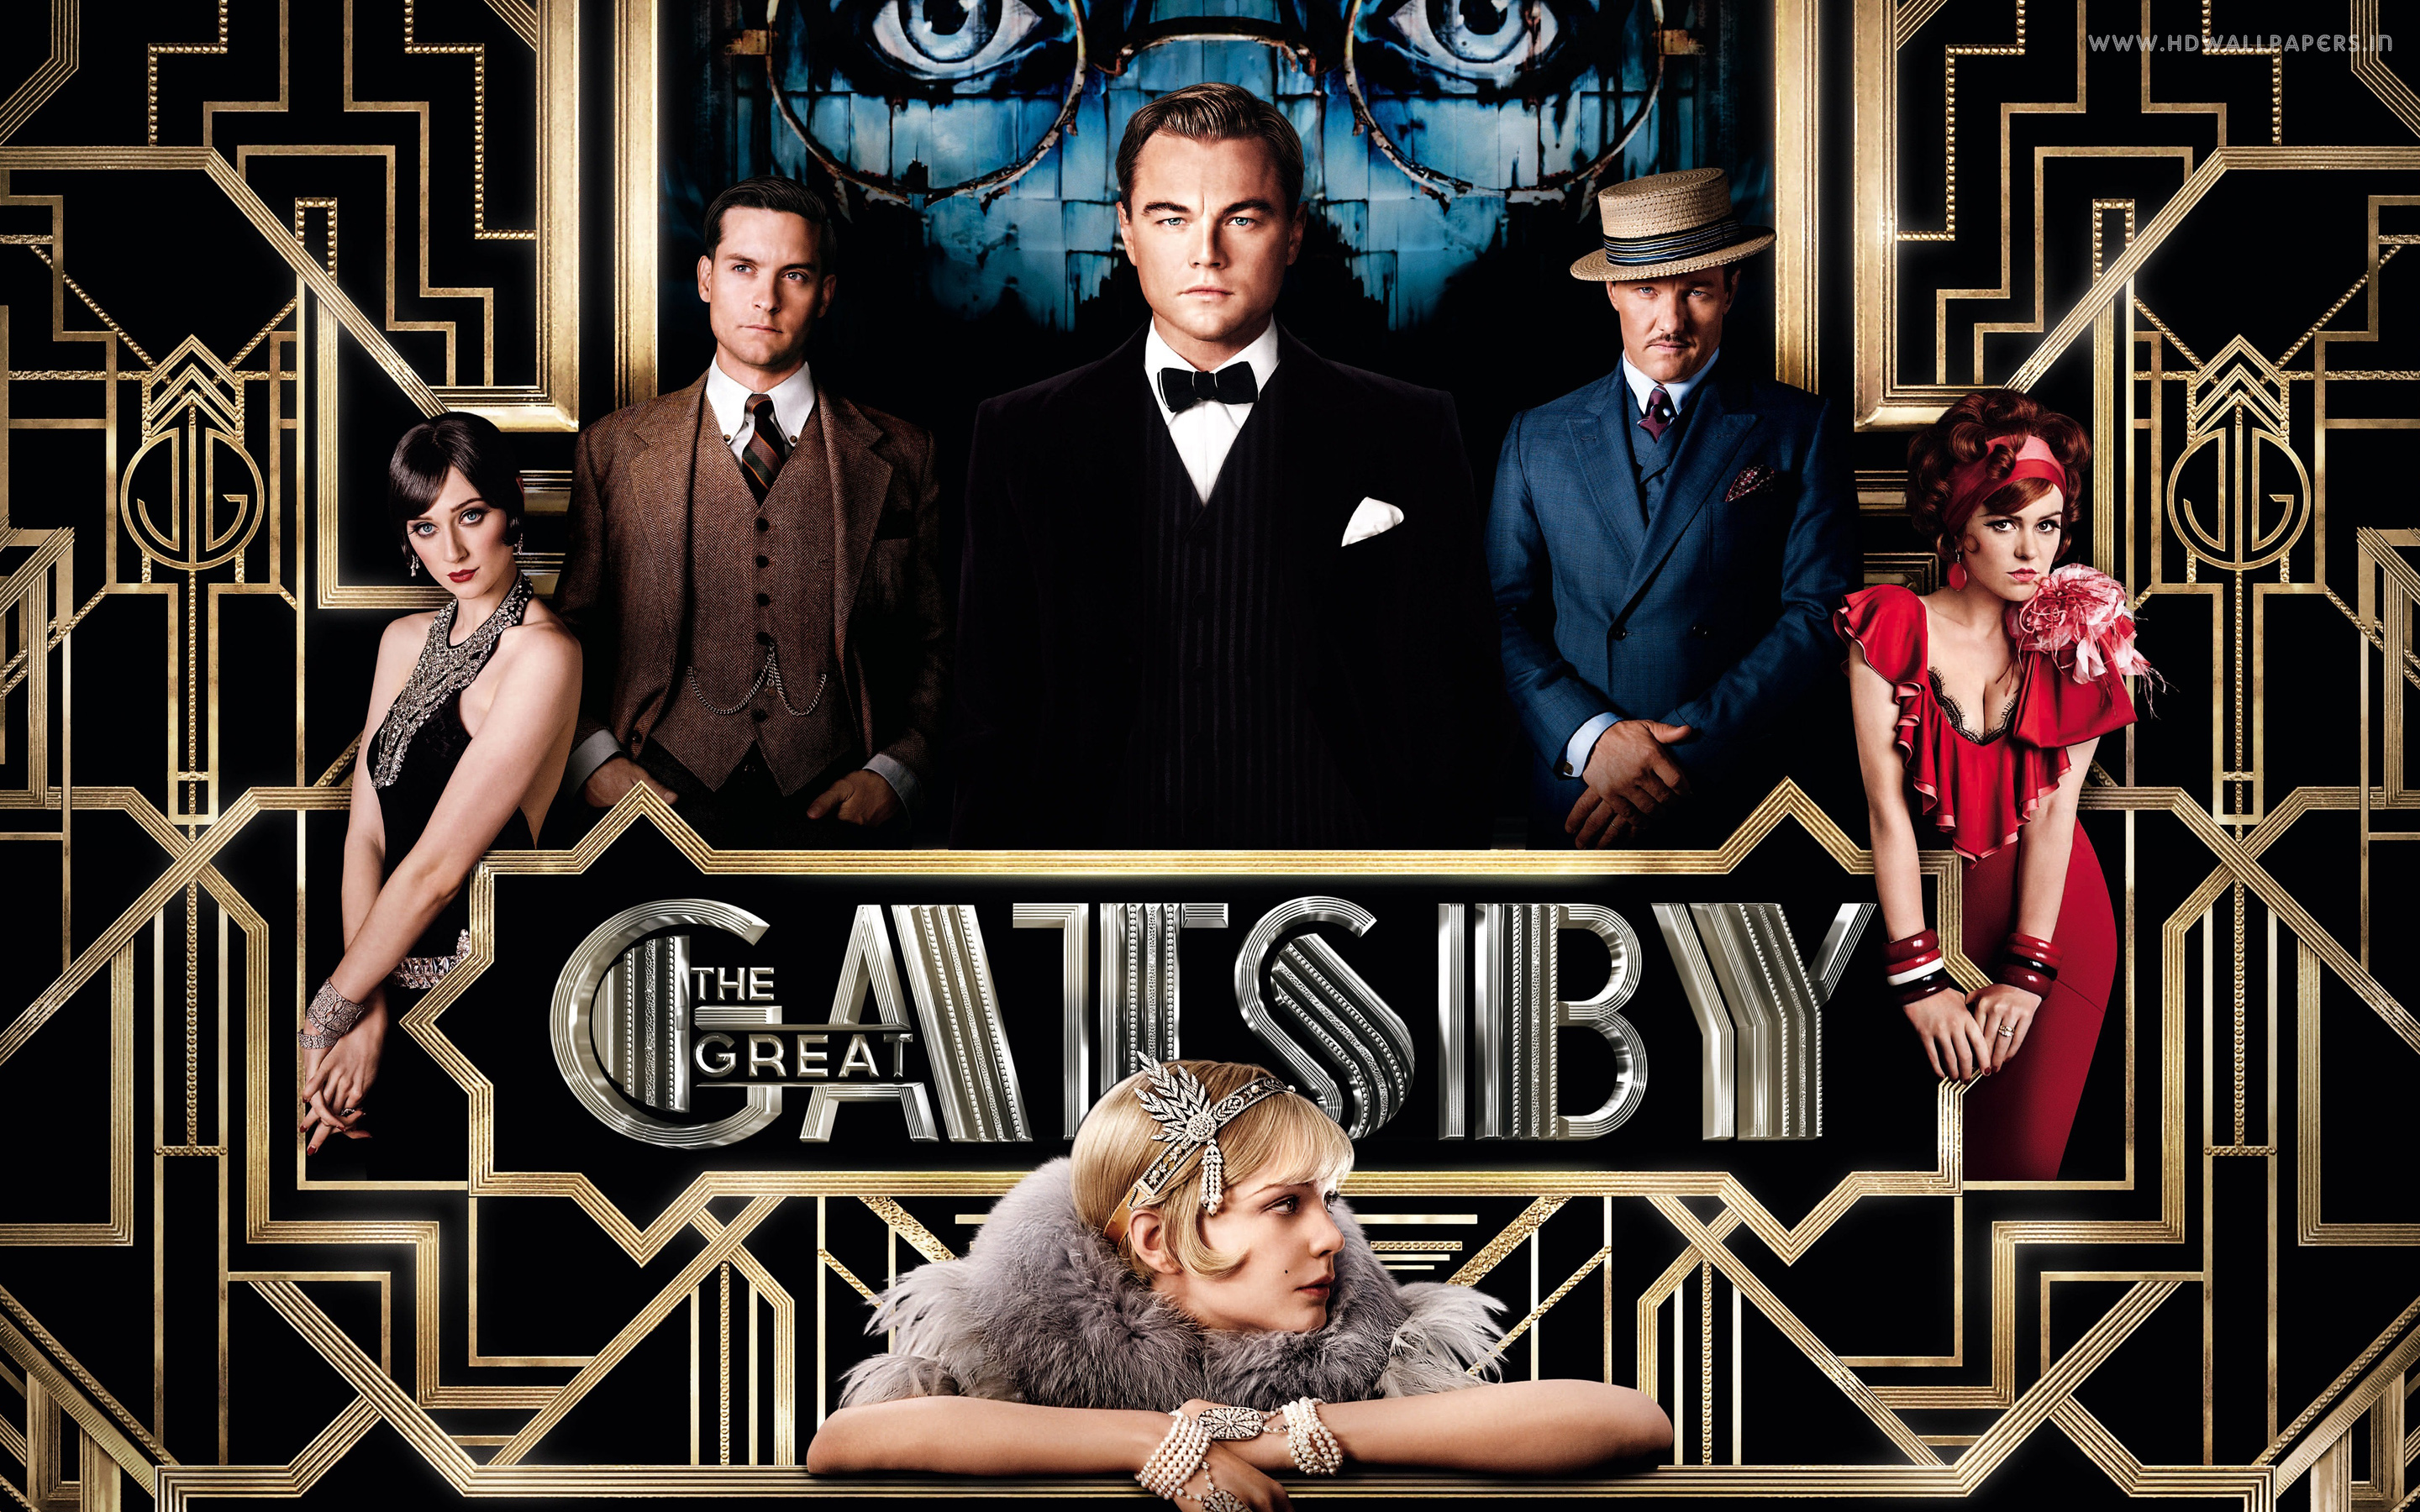 The Great Gatsby by F. Scott Fitzgerald - review